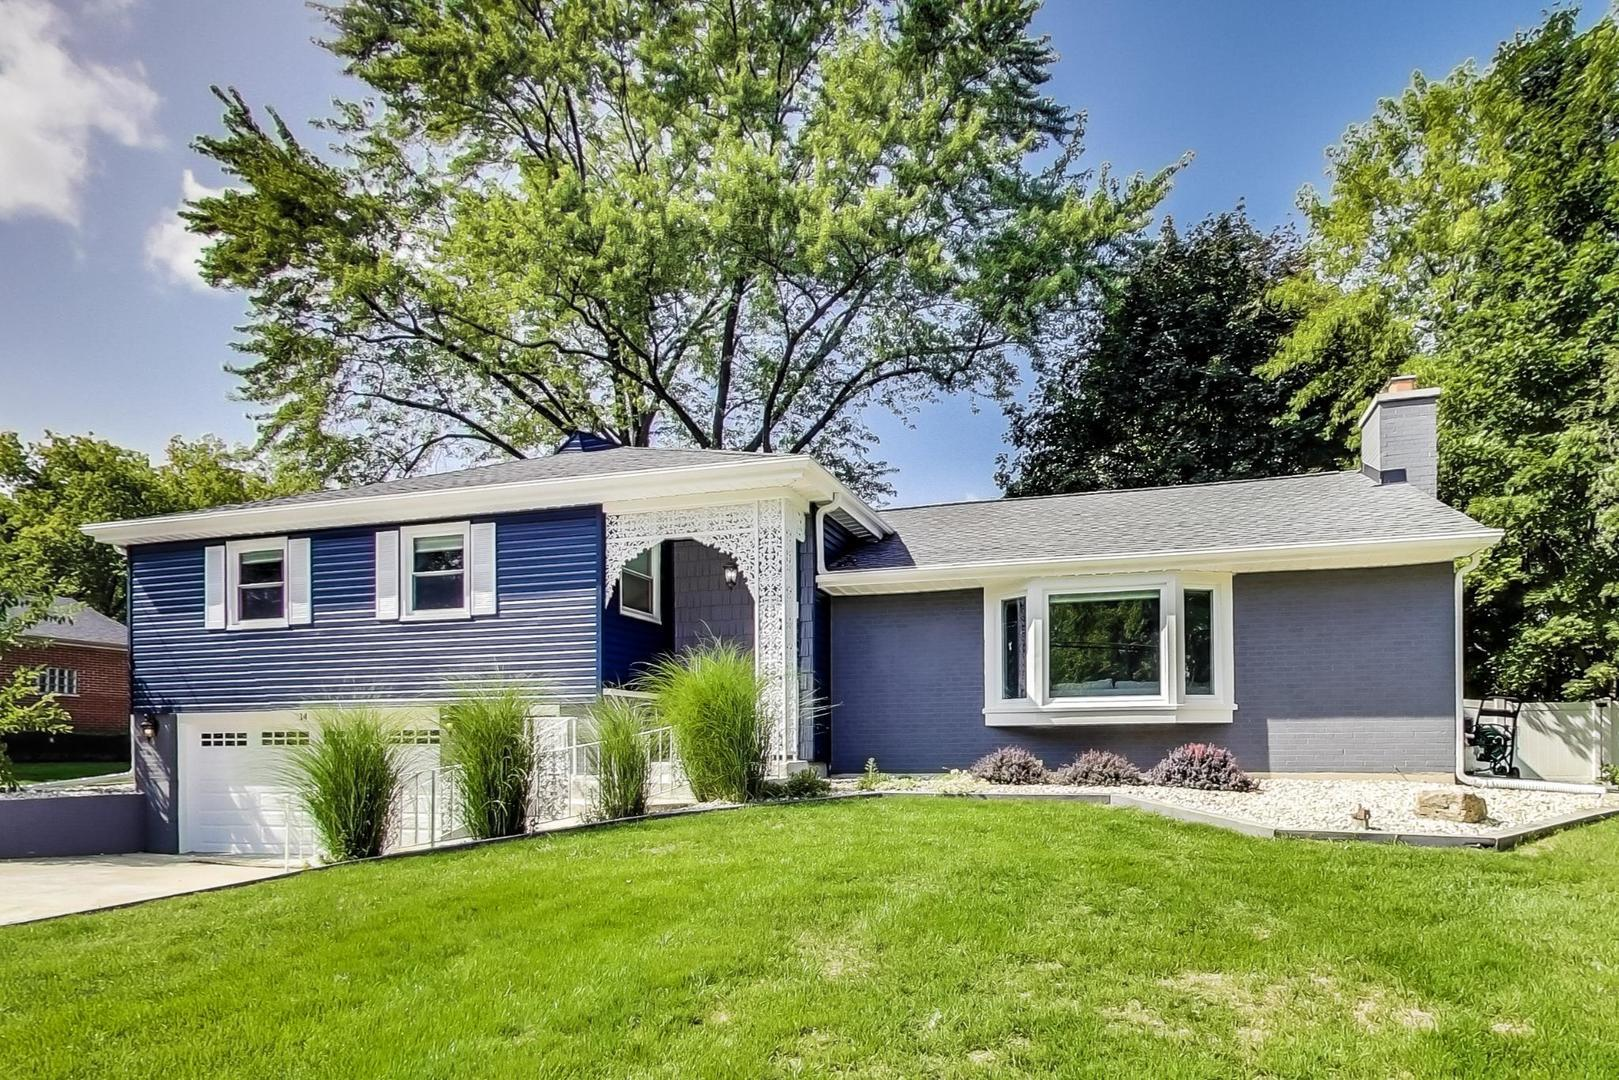 14 Alton Road, Prospect Heights, IL 60070 - #: 10863125